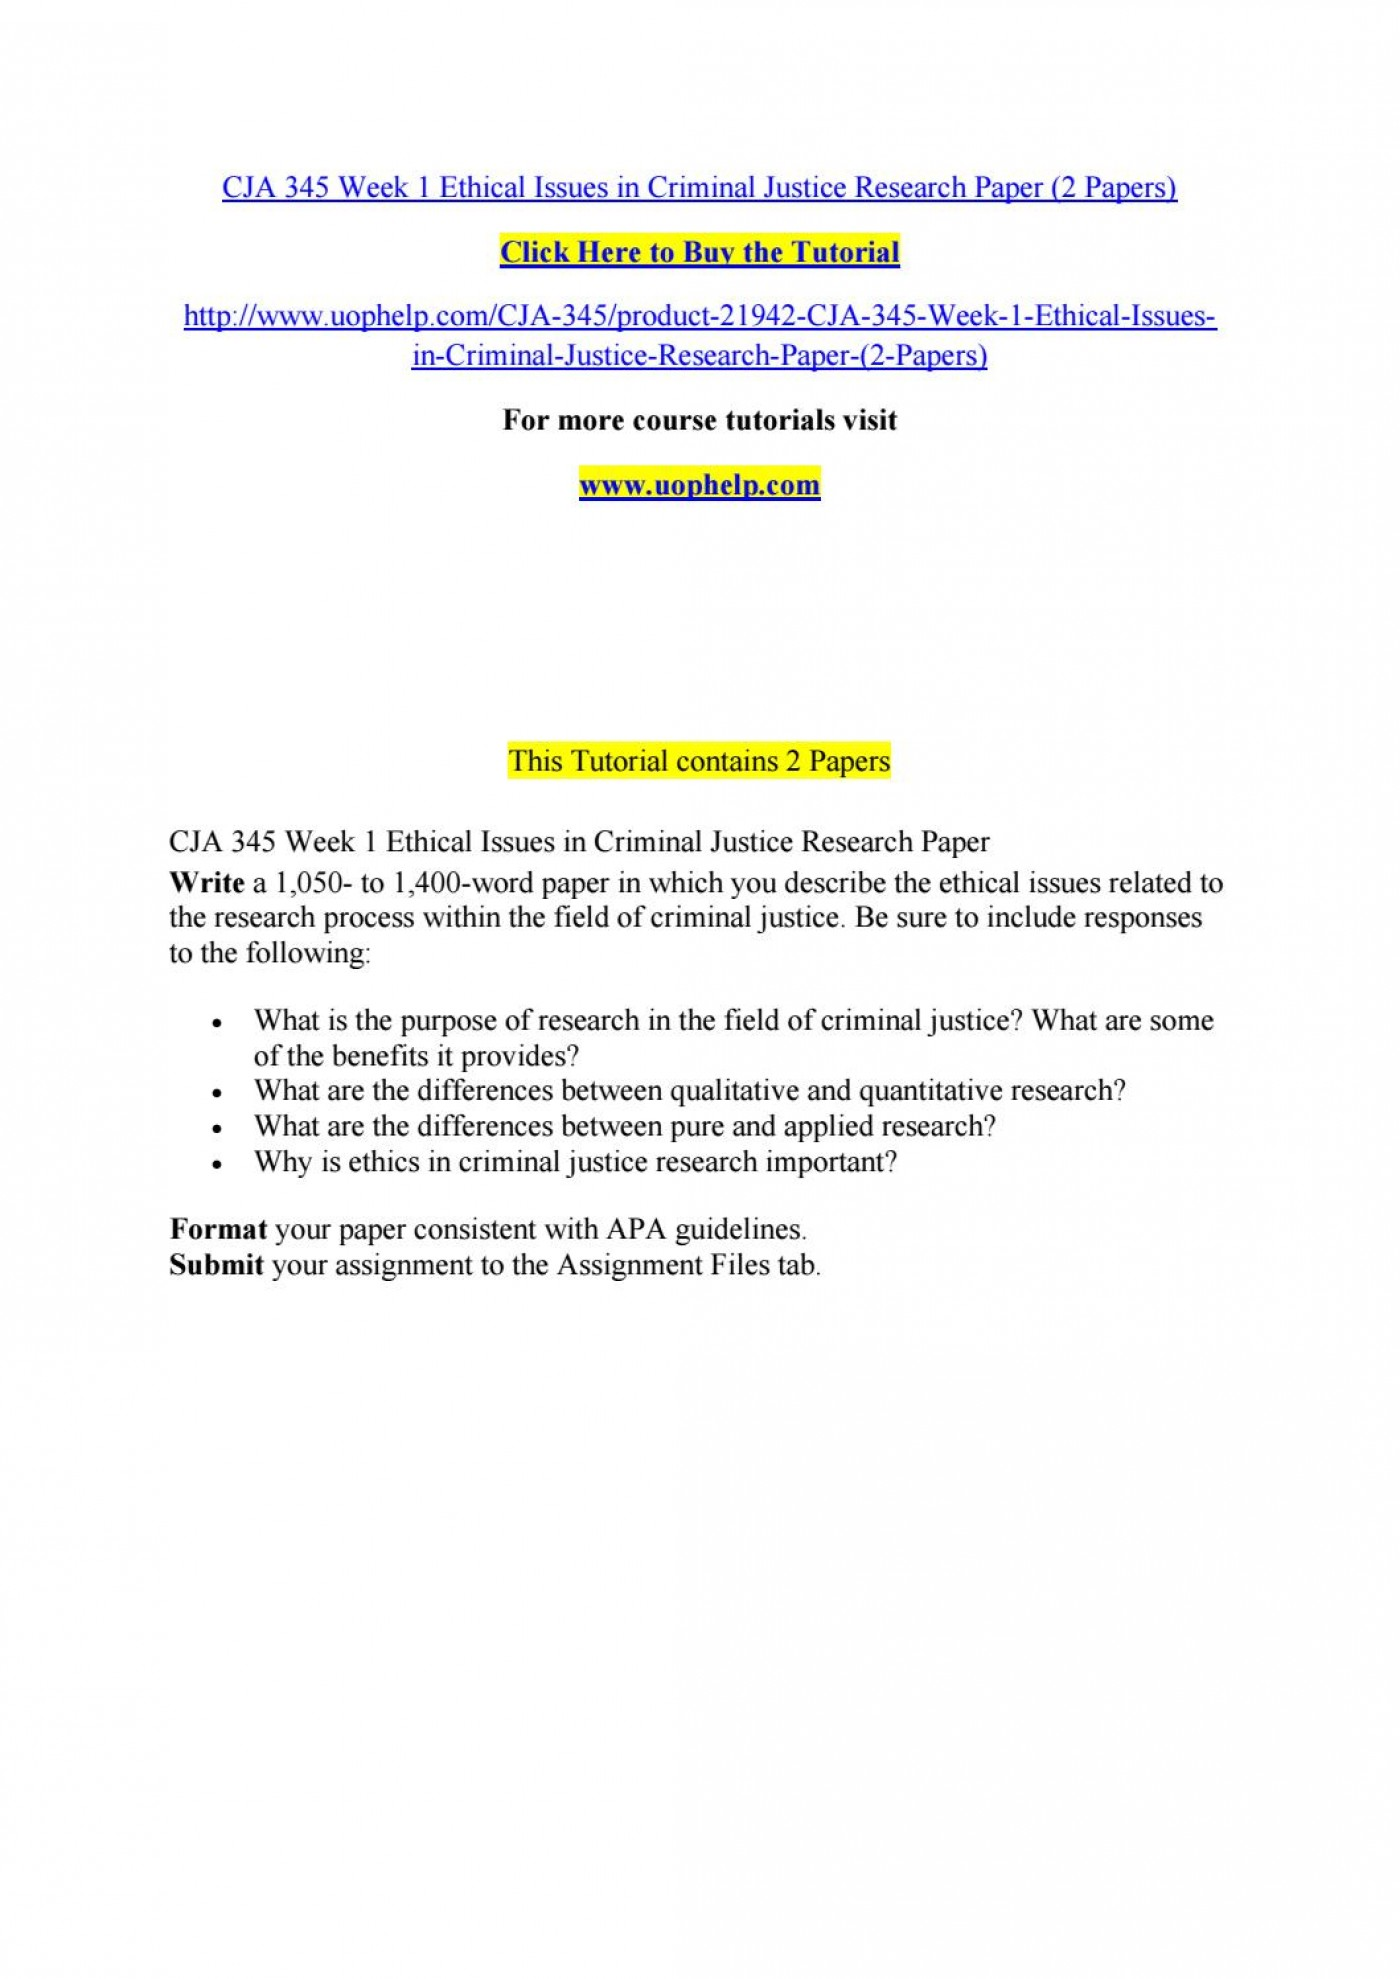 005 Research Paper Criminal Justice Papers Page 1 Formidable Free Sample 1400